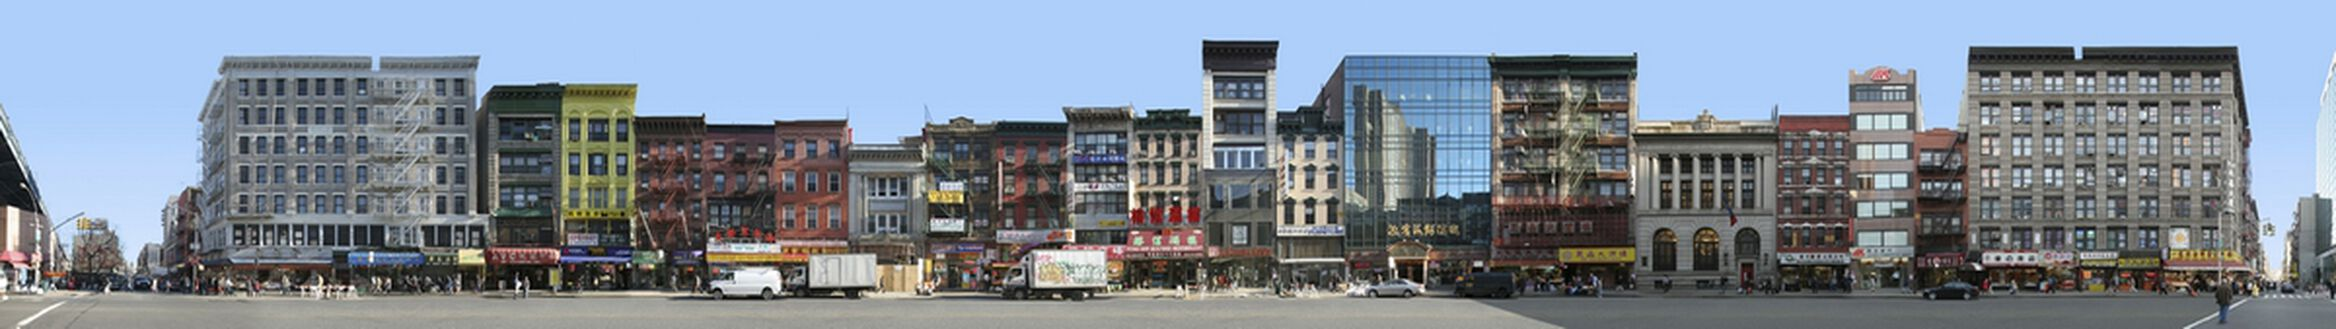 Chinatown, South Of East Broadway